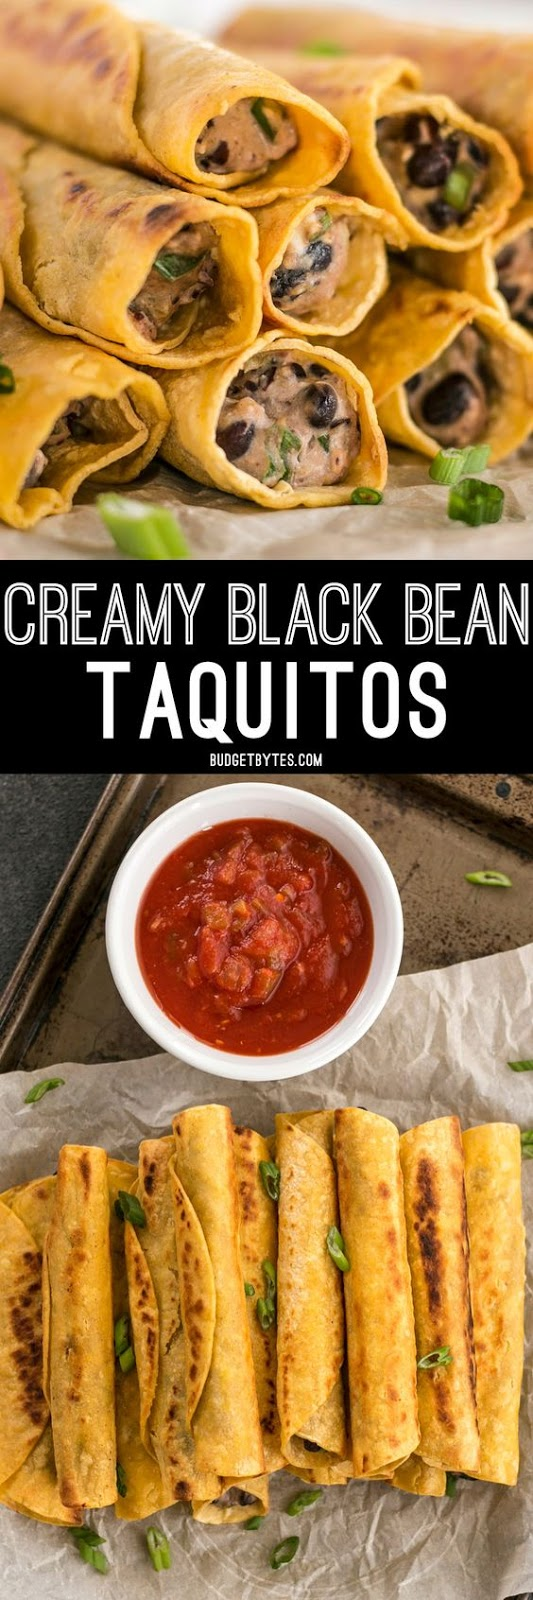 Creamy Black Bean Taquitos are an easy, tasty, and inexpensive appetizer for football parties or just for fun!